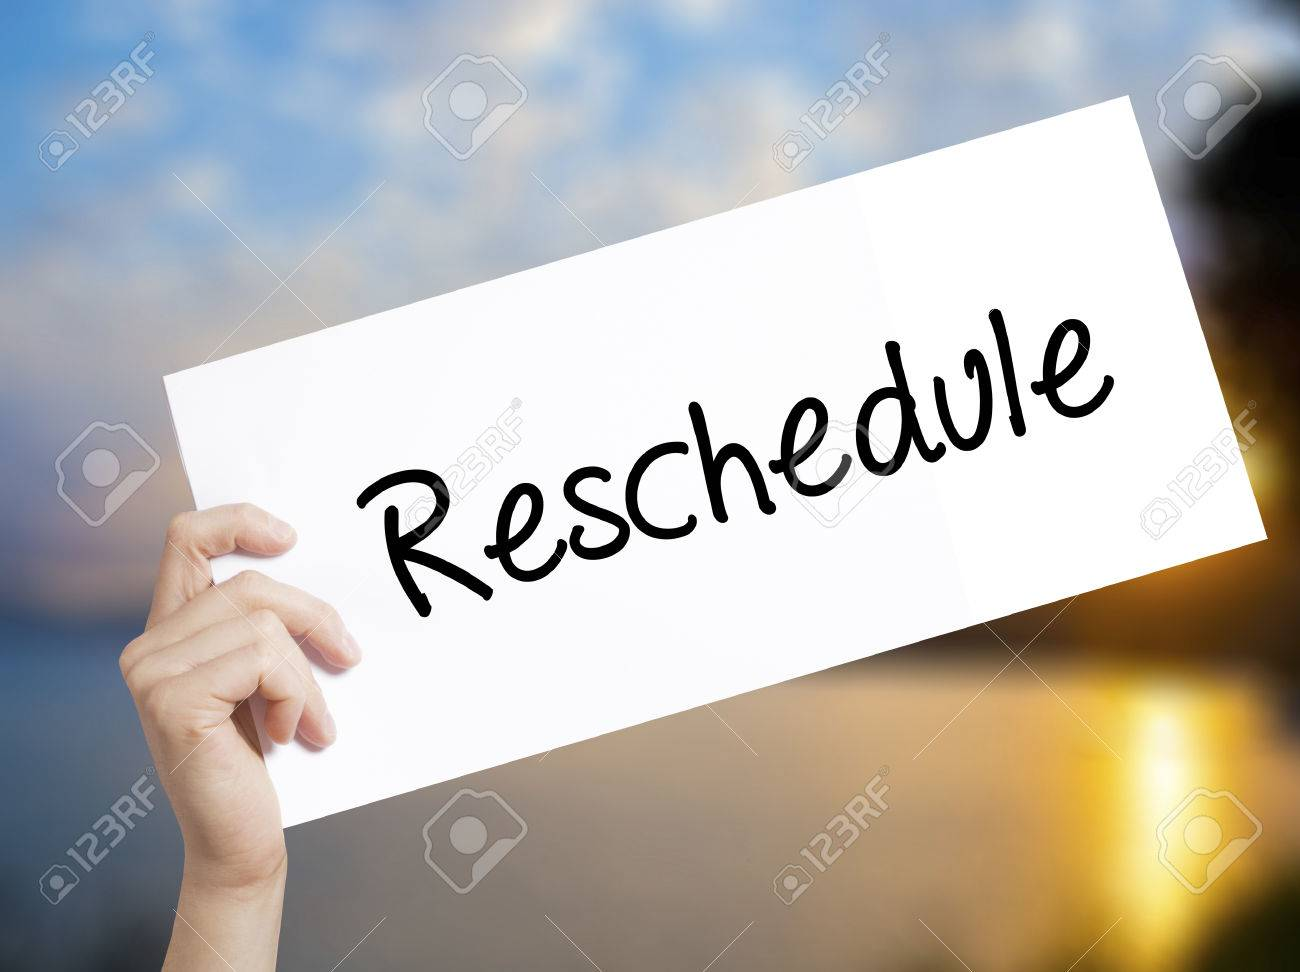 reschedule sign on white paper man hand holding paper with stock